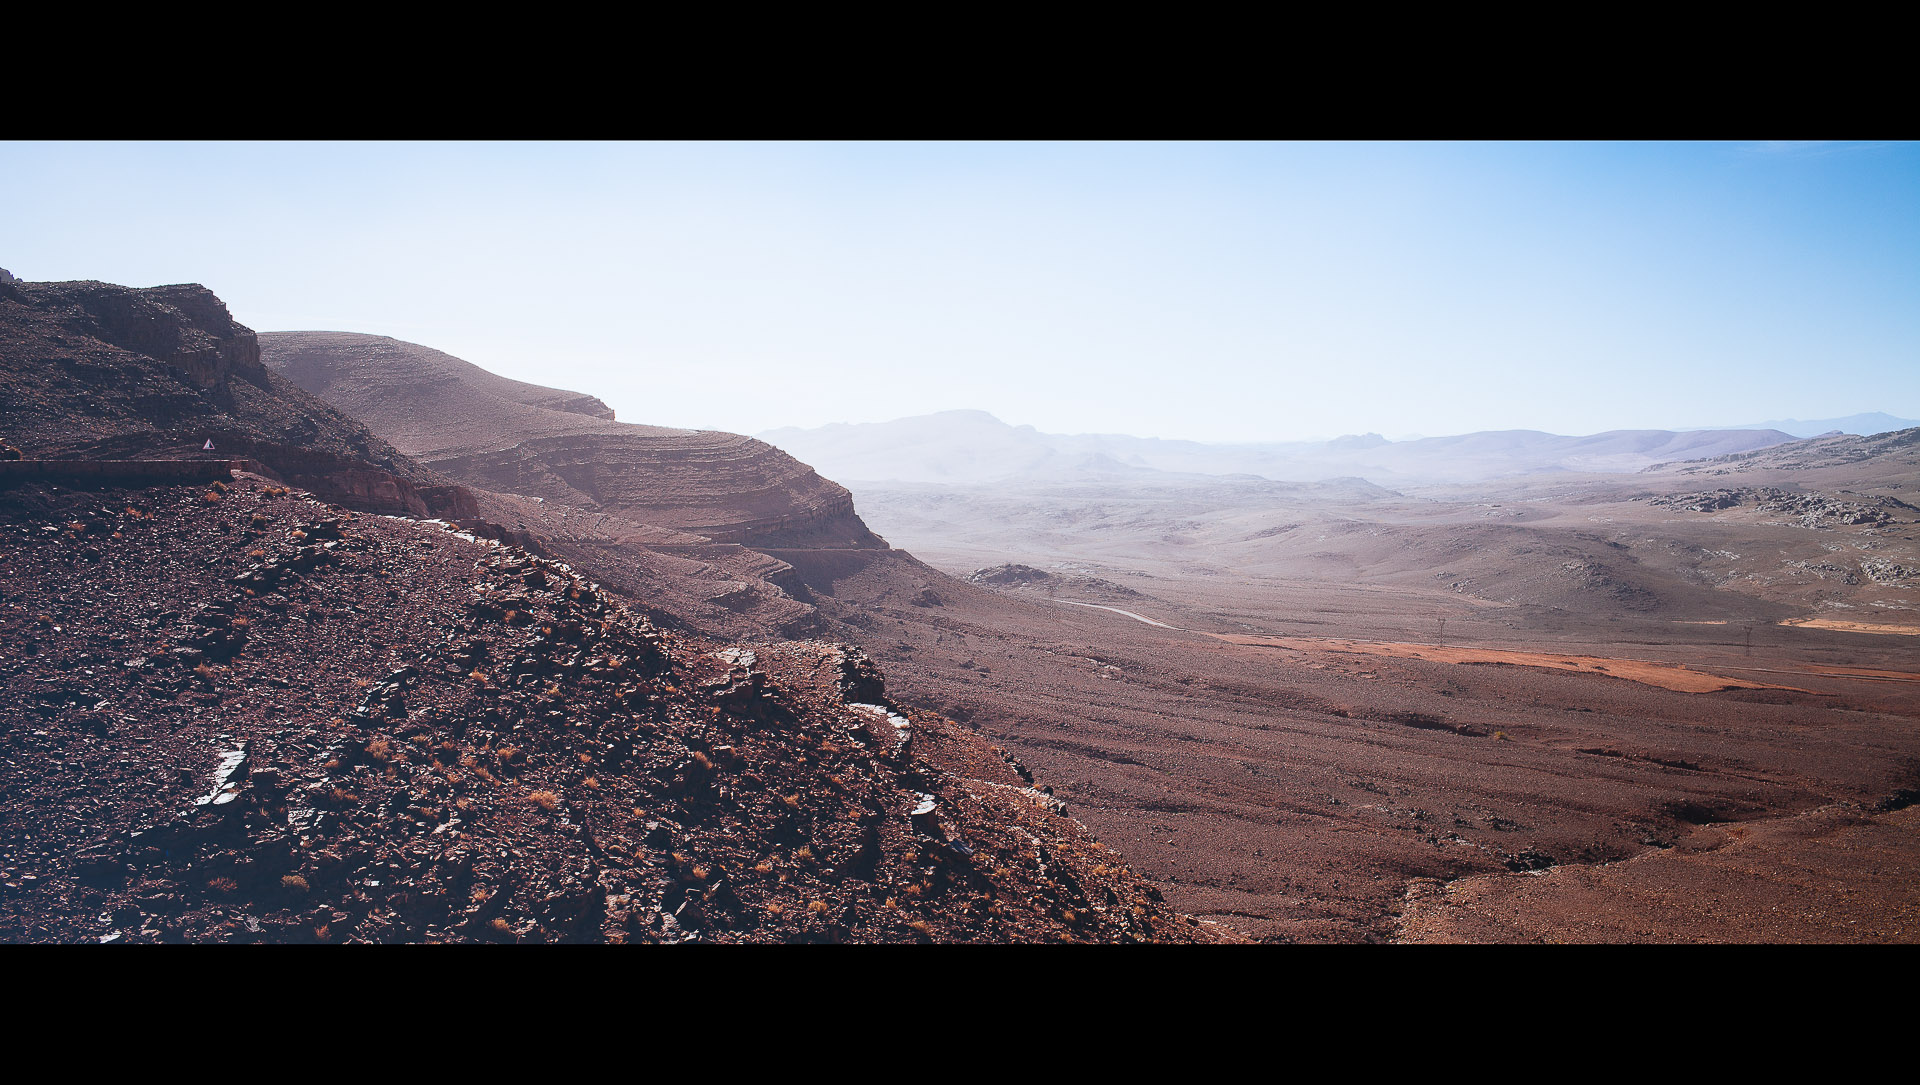 The view of the lower Atlas mountains in Morocco